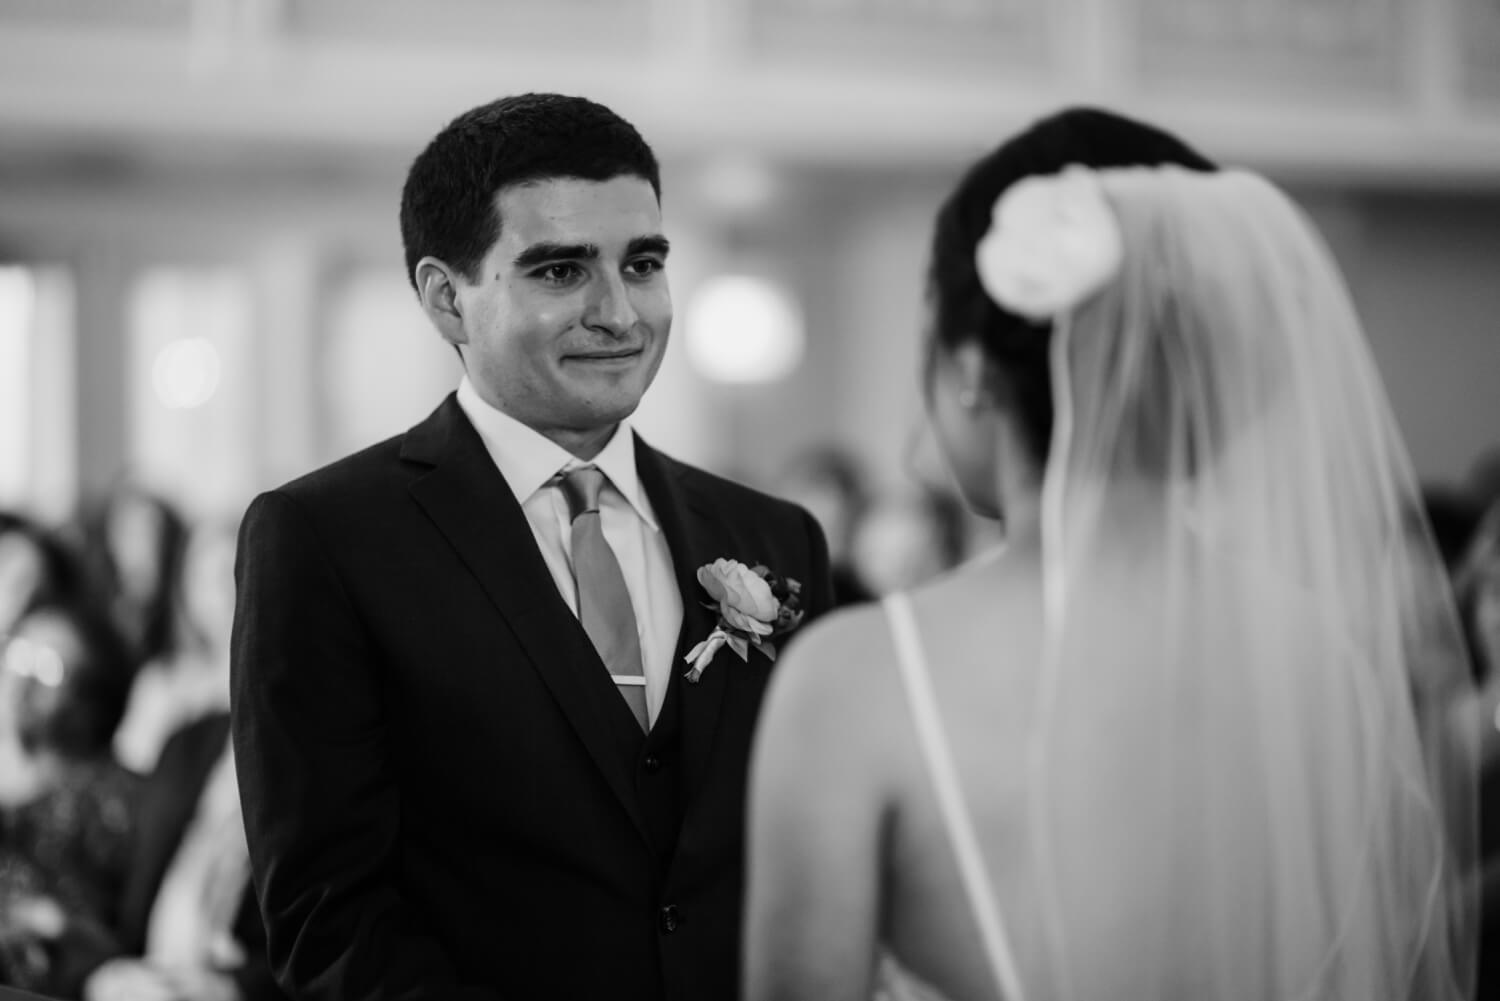 groom smiling, The Women's Club of Evanston Wedding Photographer - The Adamkovi, Chicago wedding Photographer